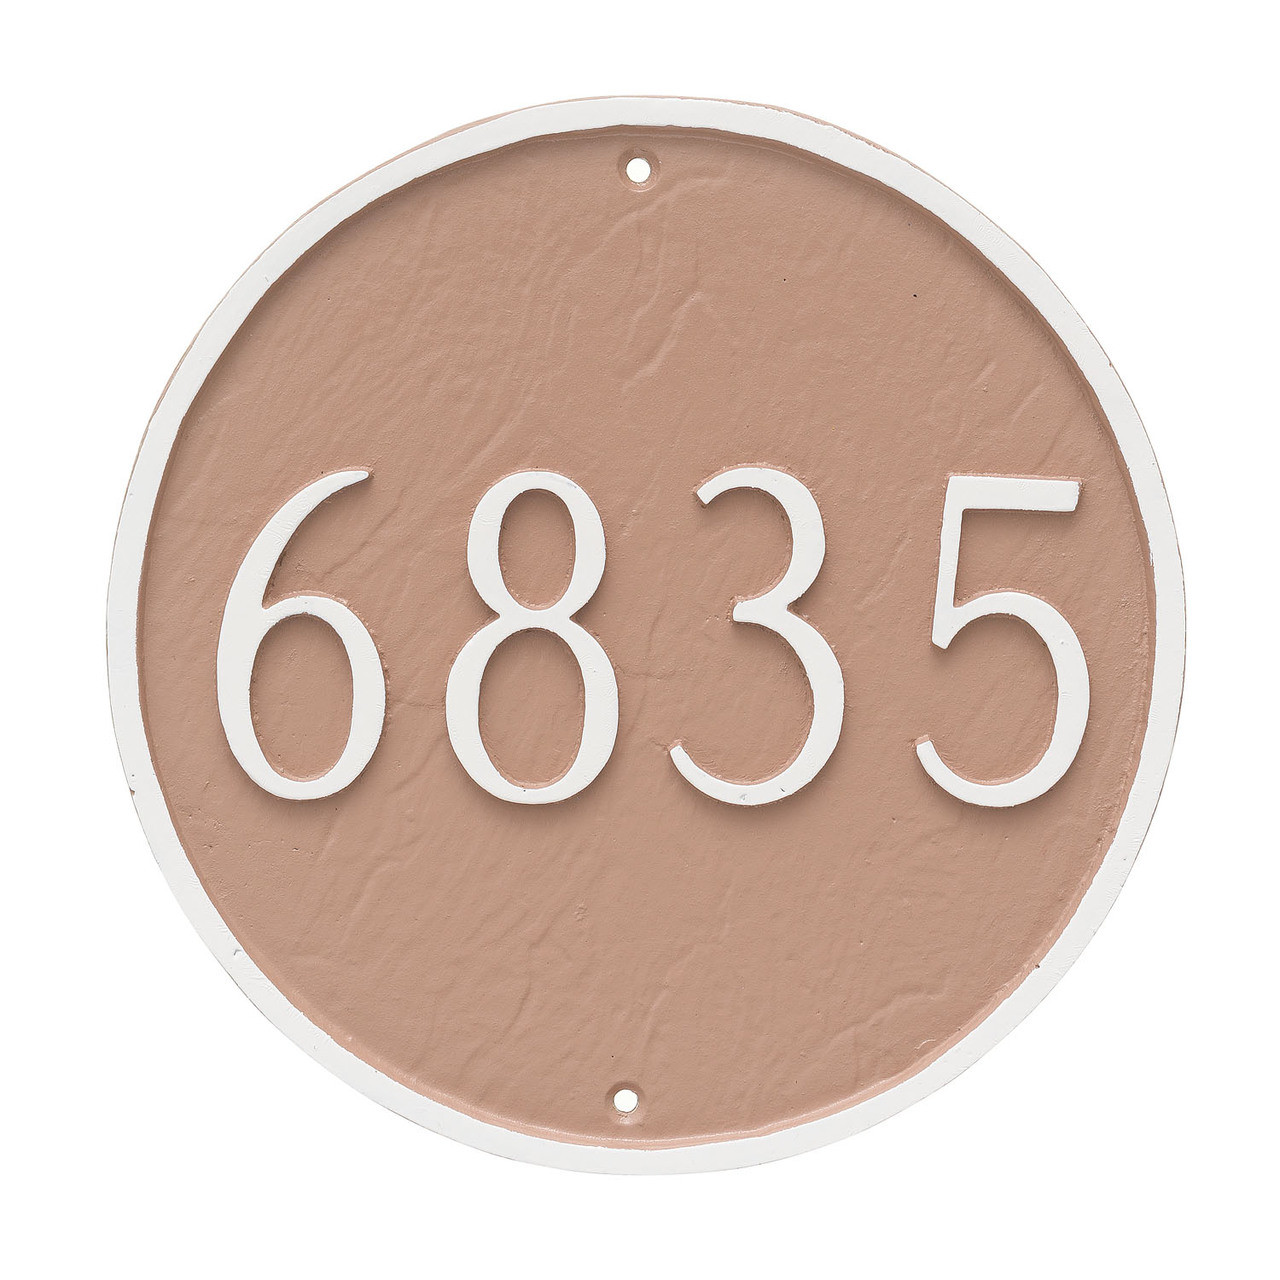 Circle House Number Plaque shown in Taupe/White